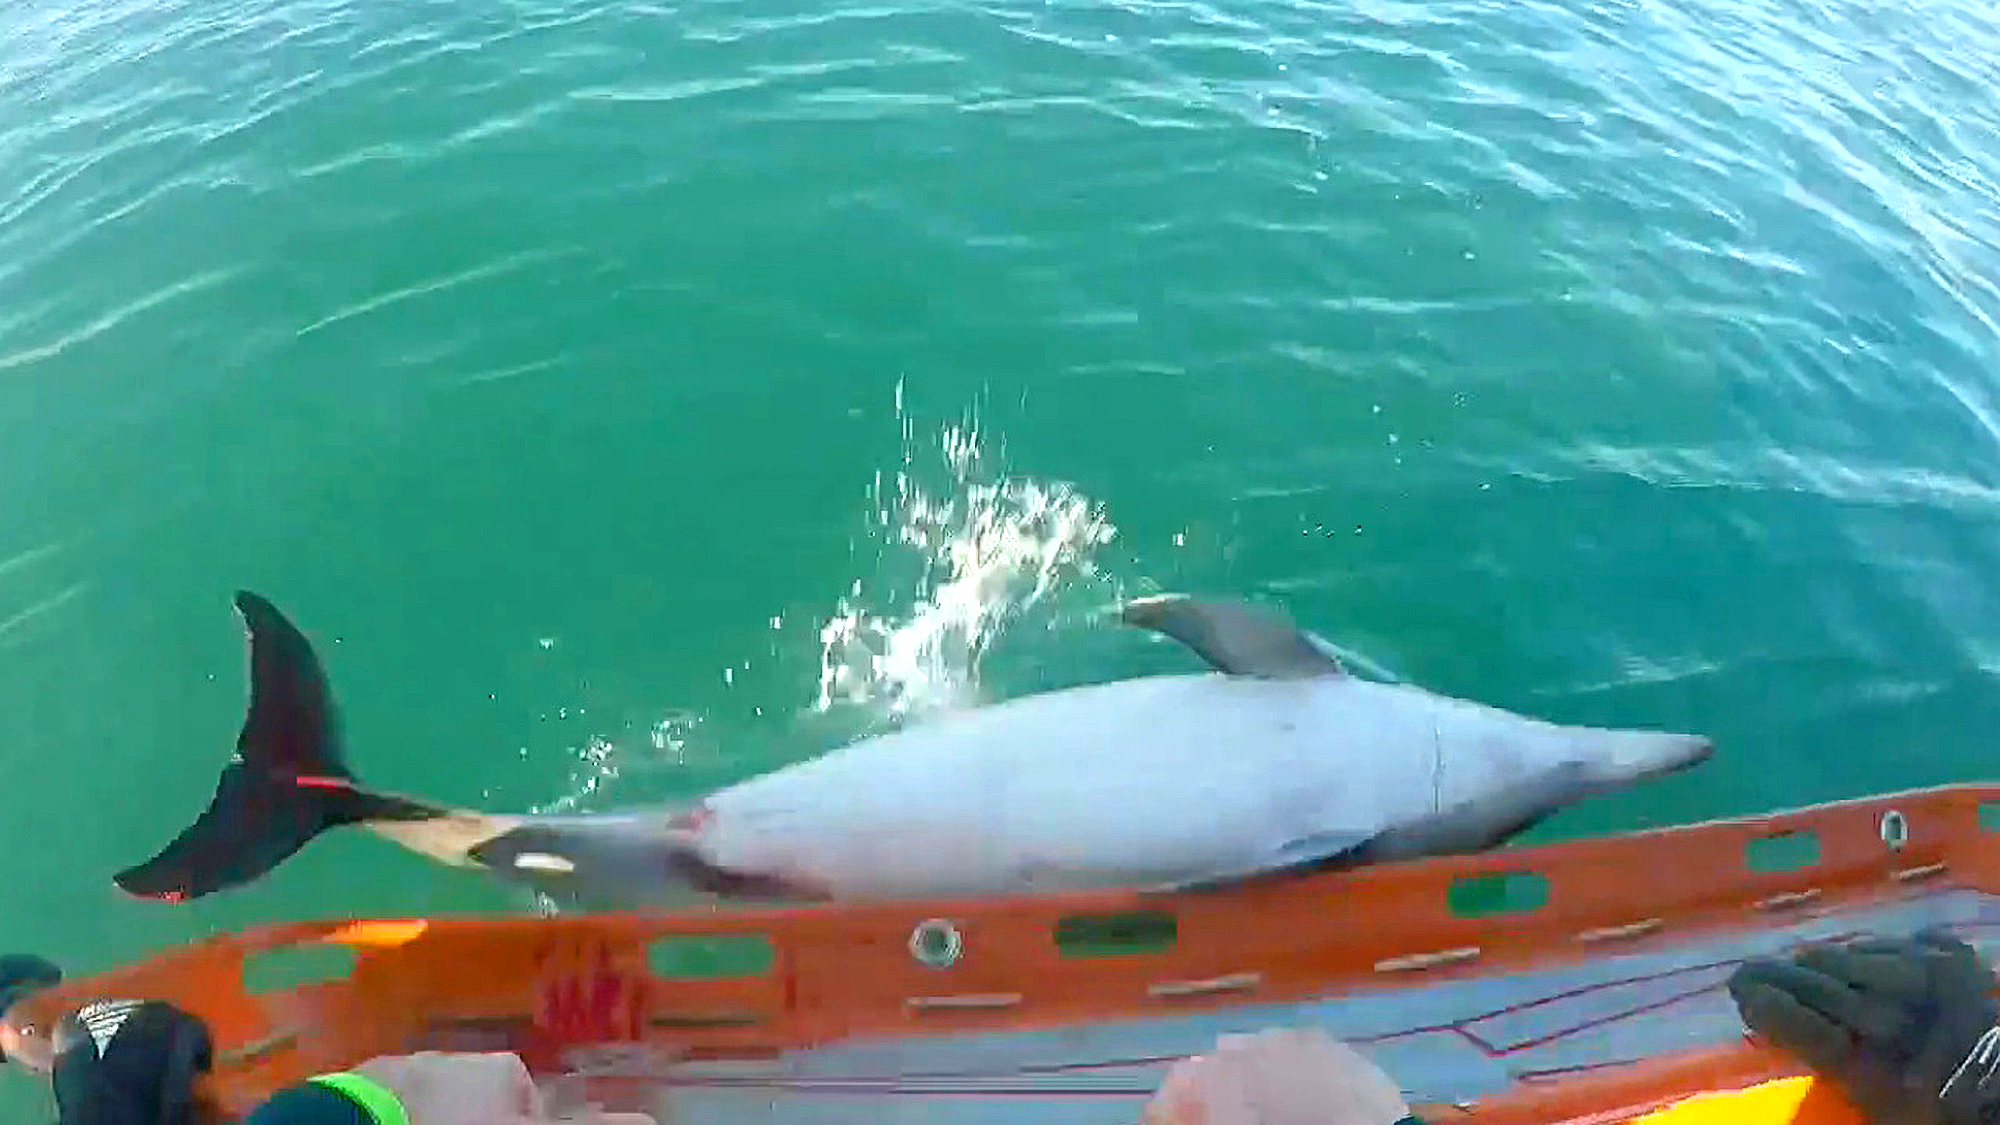 Dolphins Stranded In Europe's Strongest Tides, Rescued and Released - Zenger News